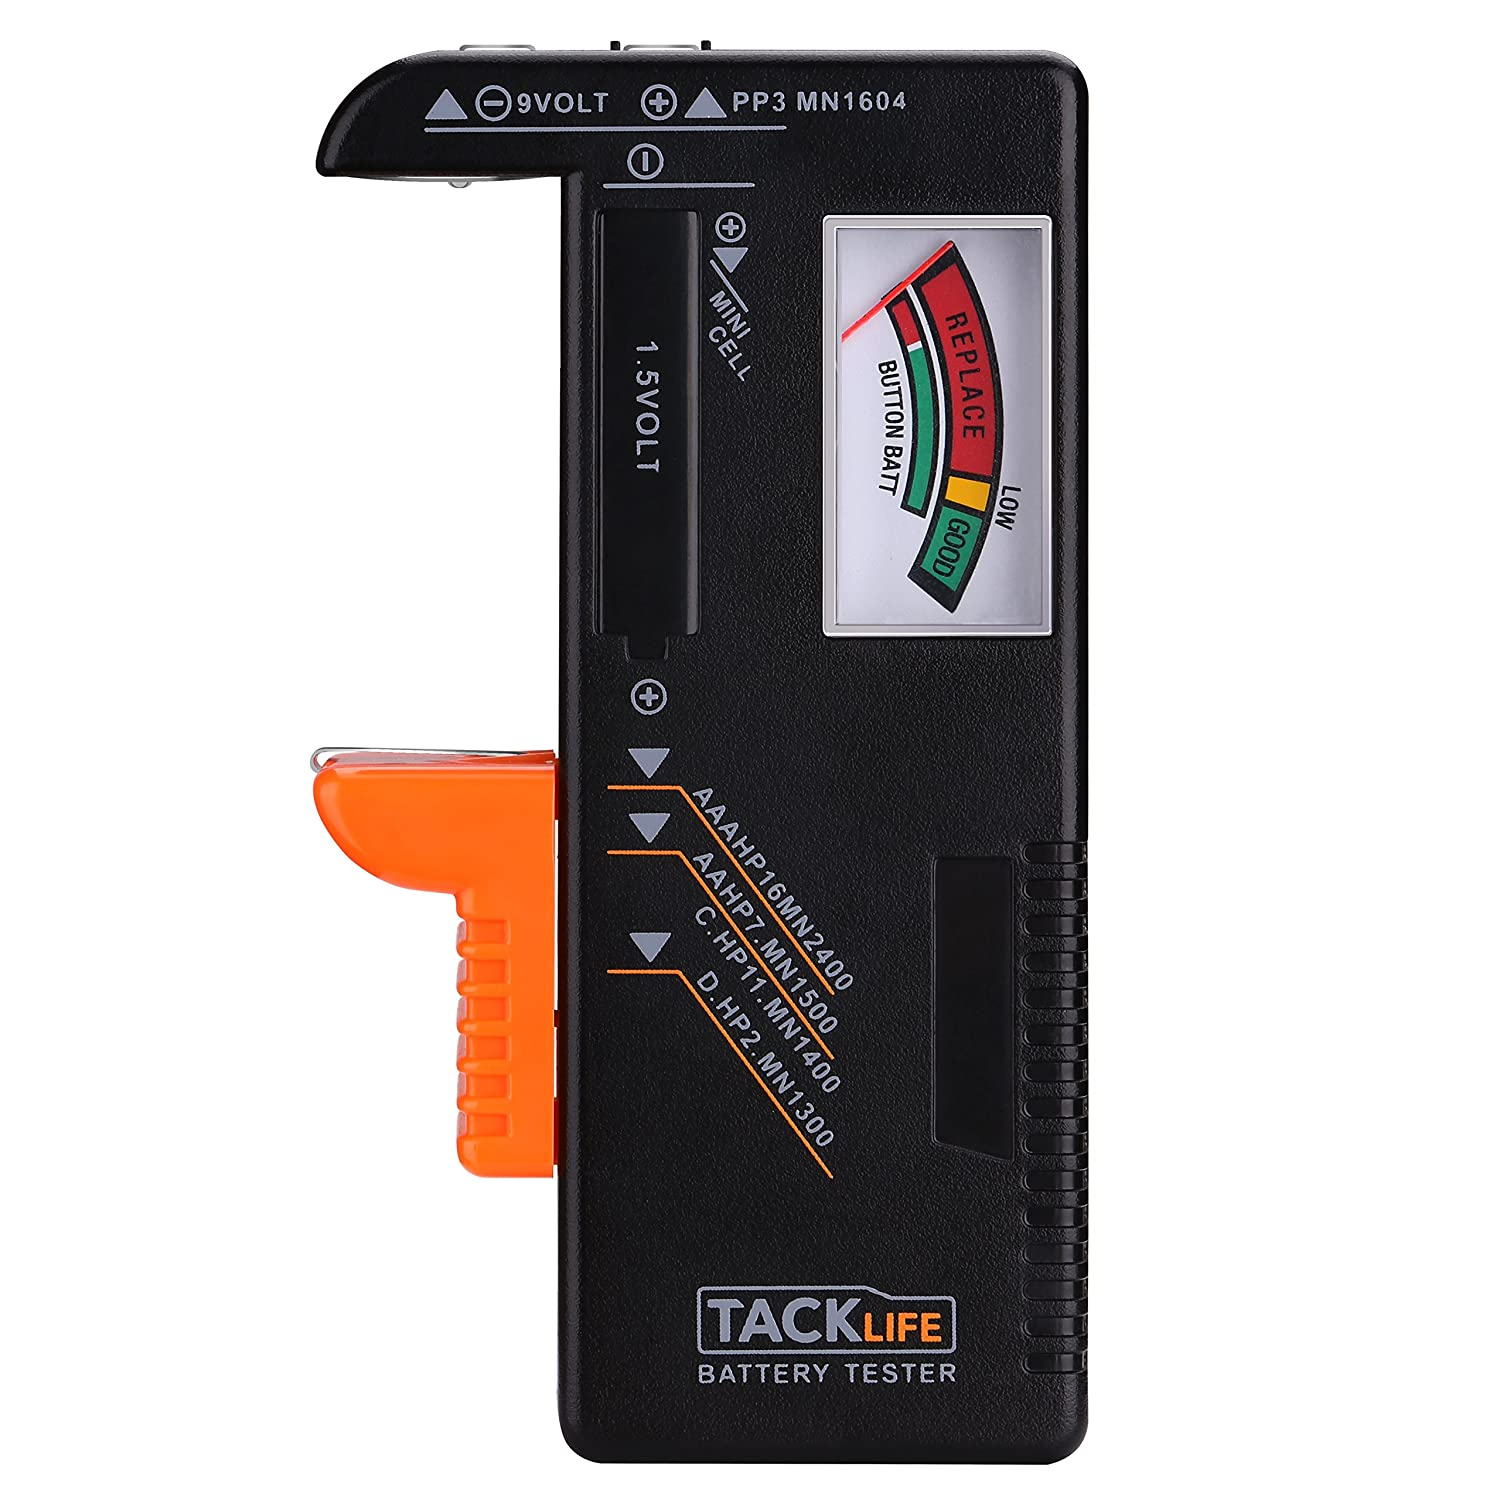 Valentines Gift Tacklife MBT01 Battery Tester, Universal Battery Checker for AA AAA C D 9V 1.5V Button Cell Batteries with 24 Months Warranty, Perfect Valentines Day Gift